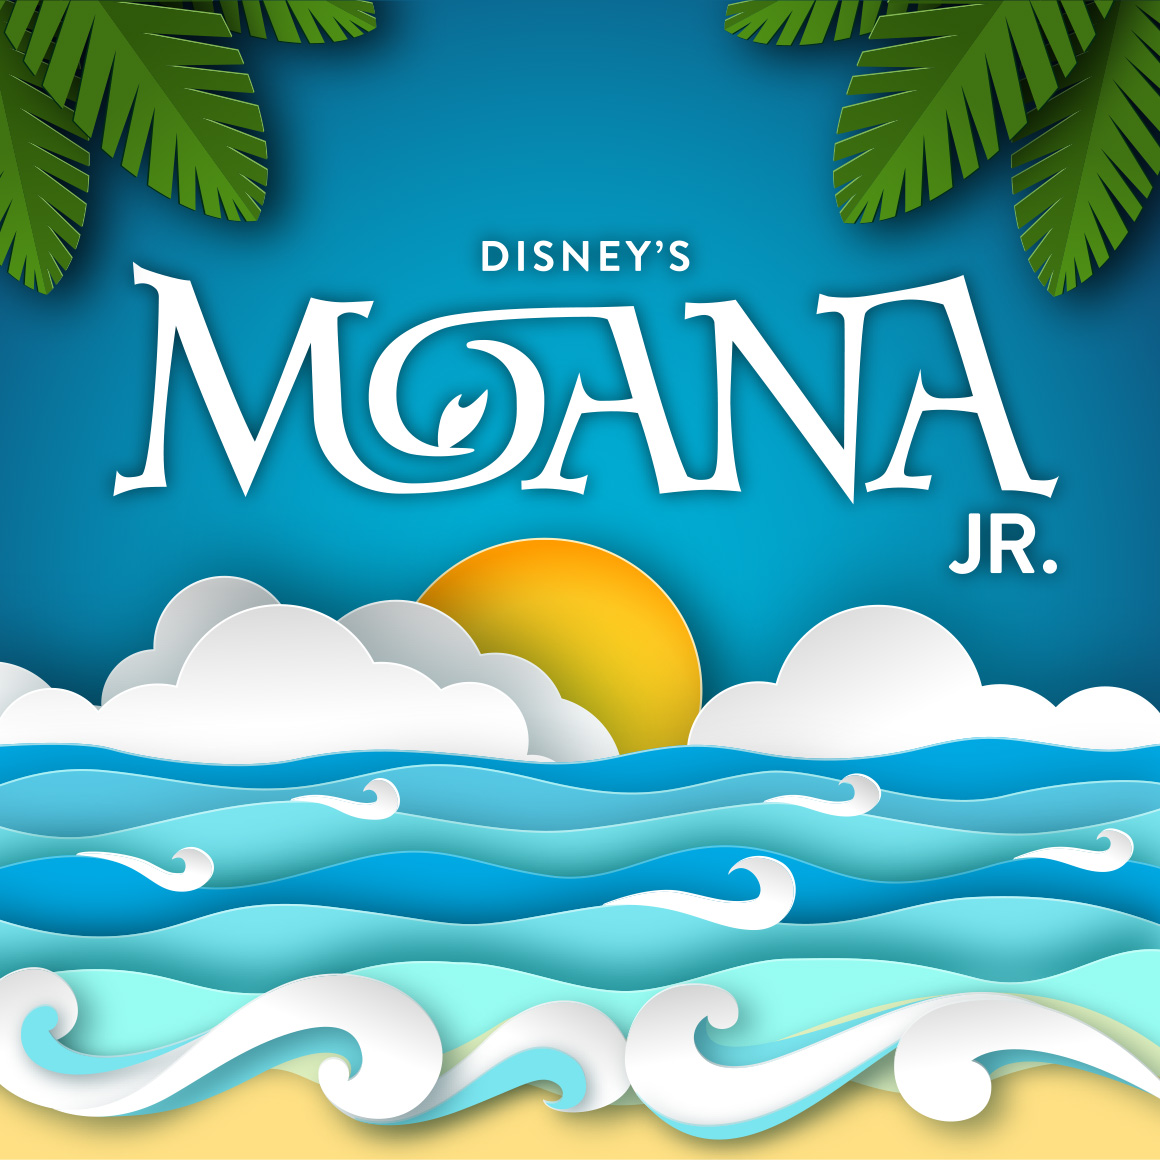 Moana Pre-Audition Meeting